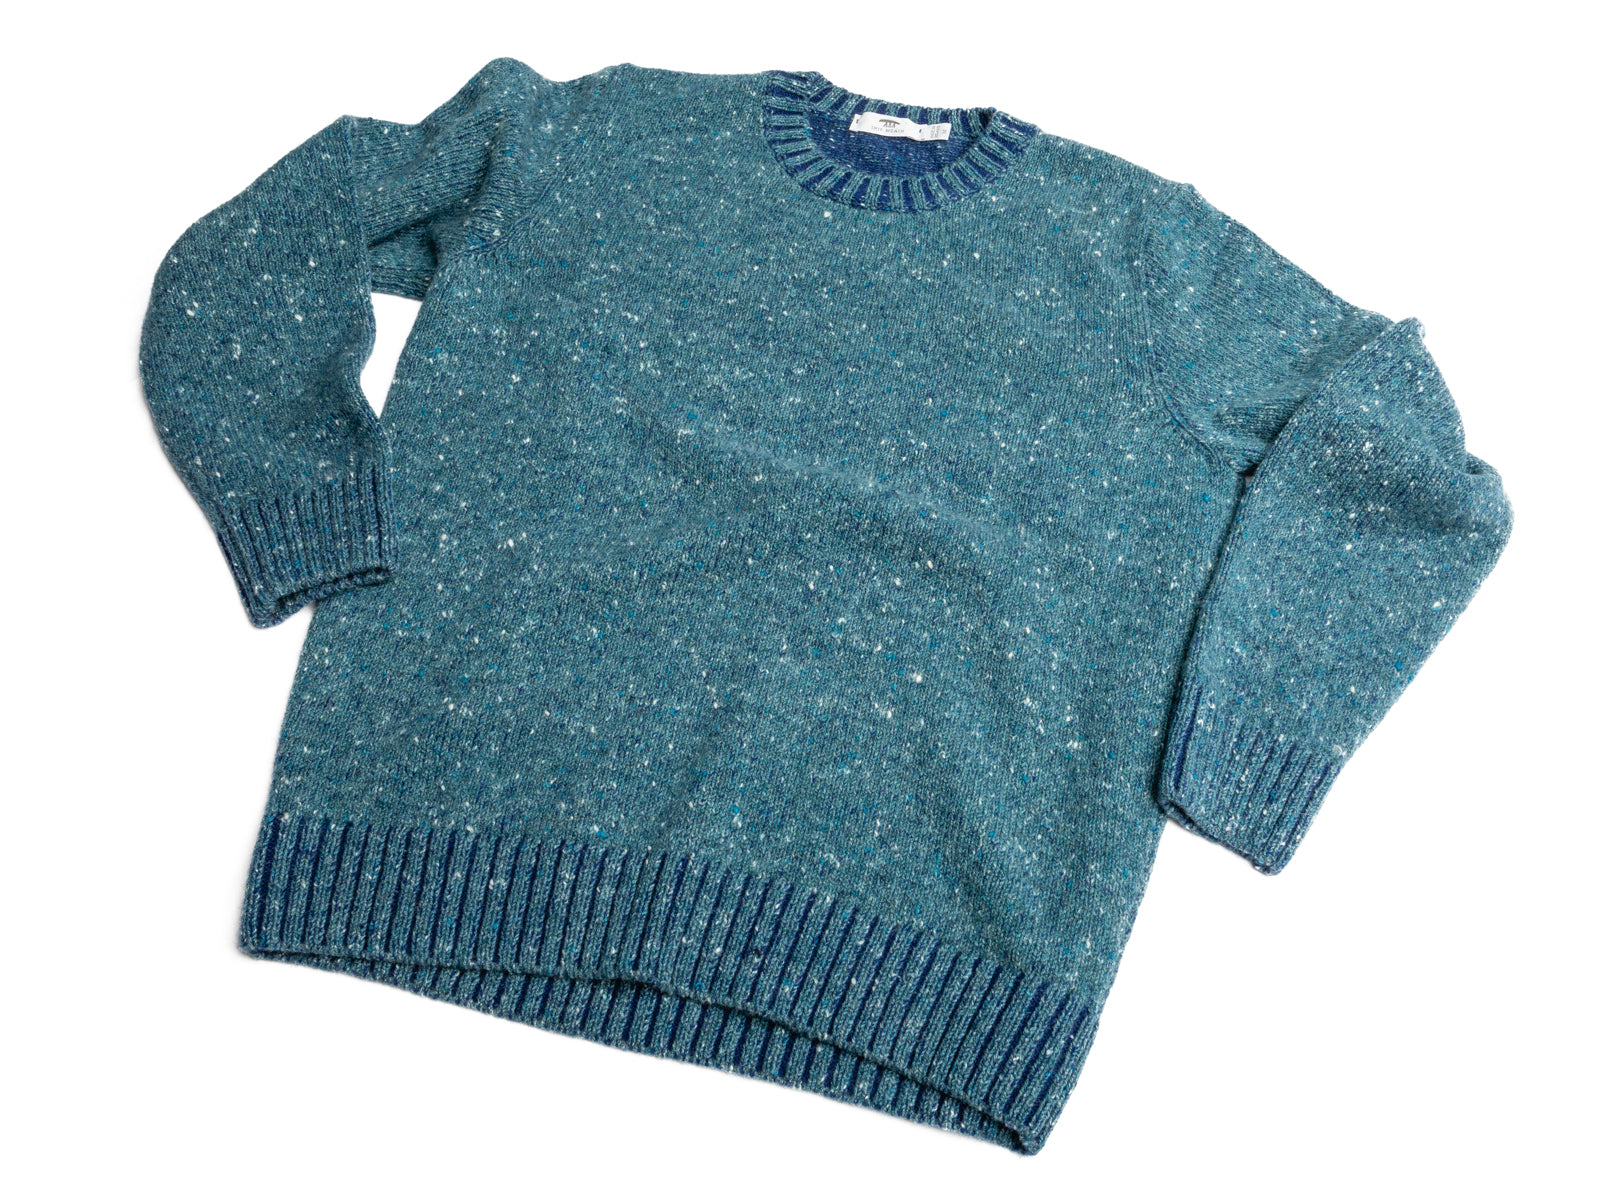 Seafoam Melange Cashmere Blend Donegal Crew Neck Sweater